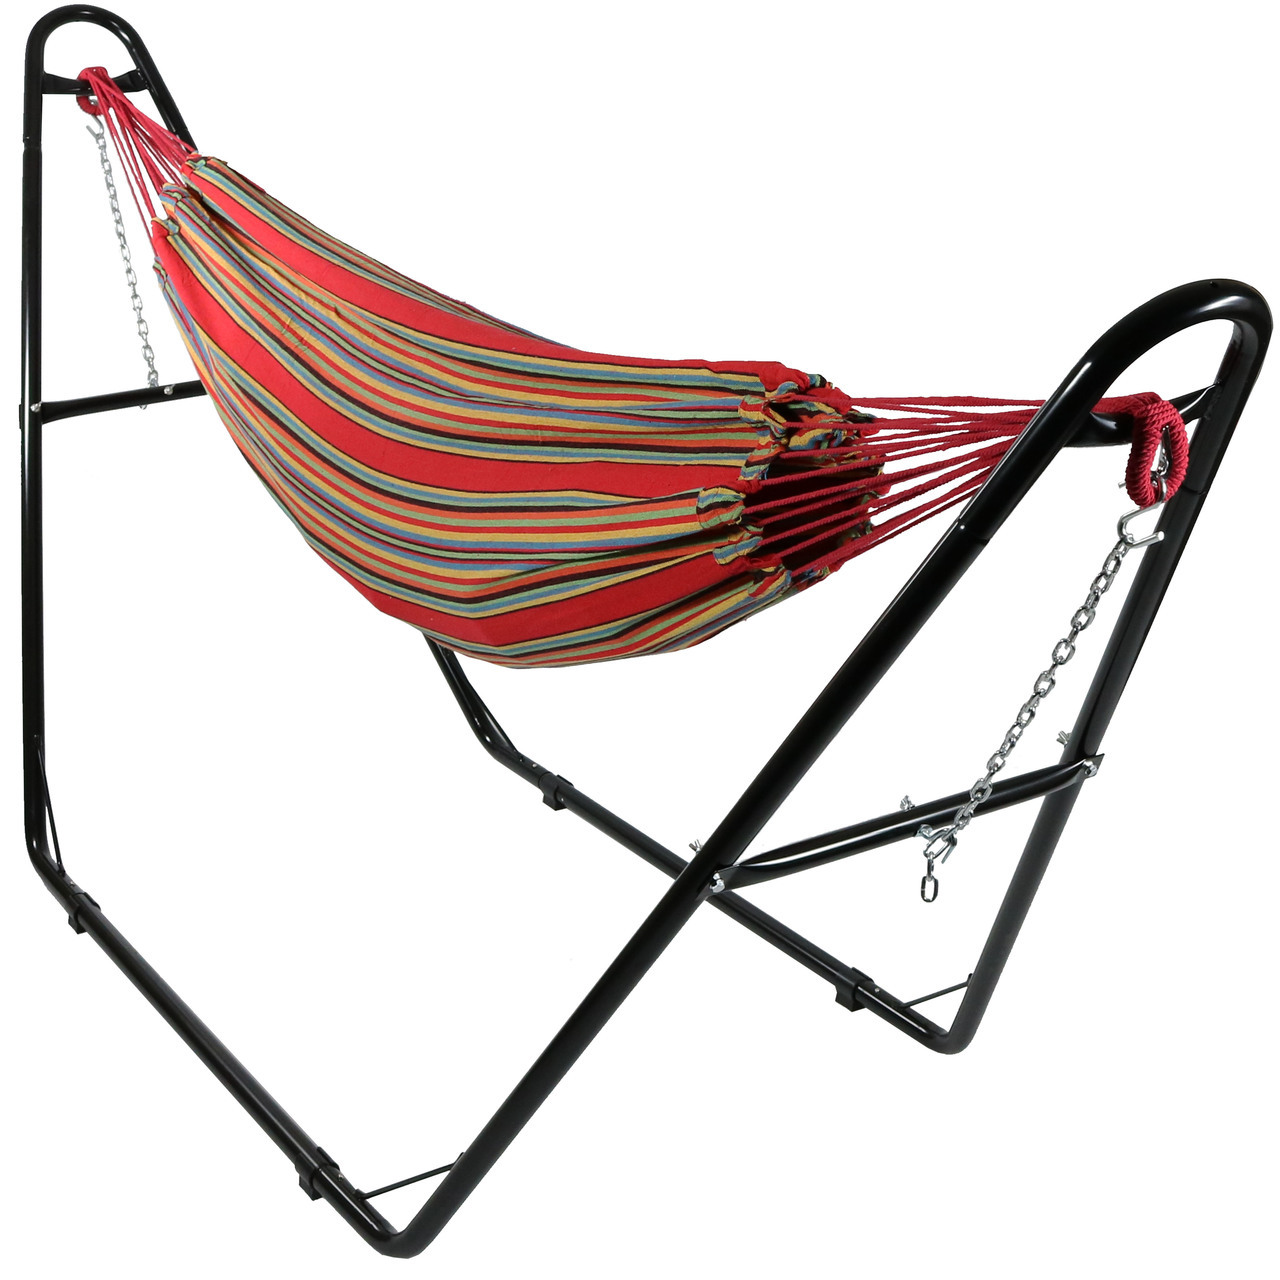 single person hammock chair wooden patio sunnydaze brazilian cotton 2 and universal